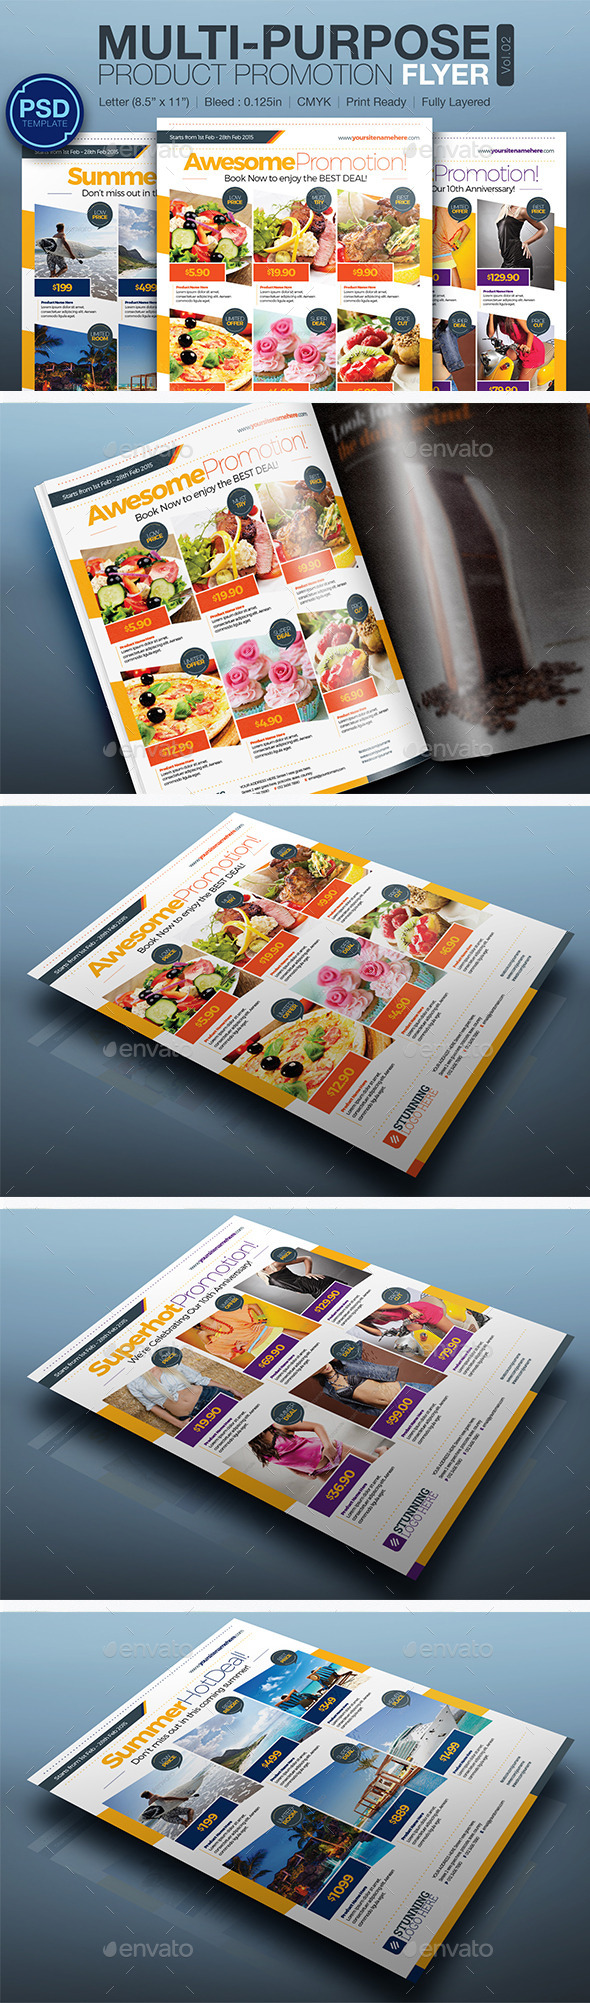 Product Promotion Flyer Vol.02 - Commerce Flyers